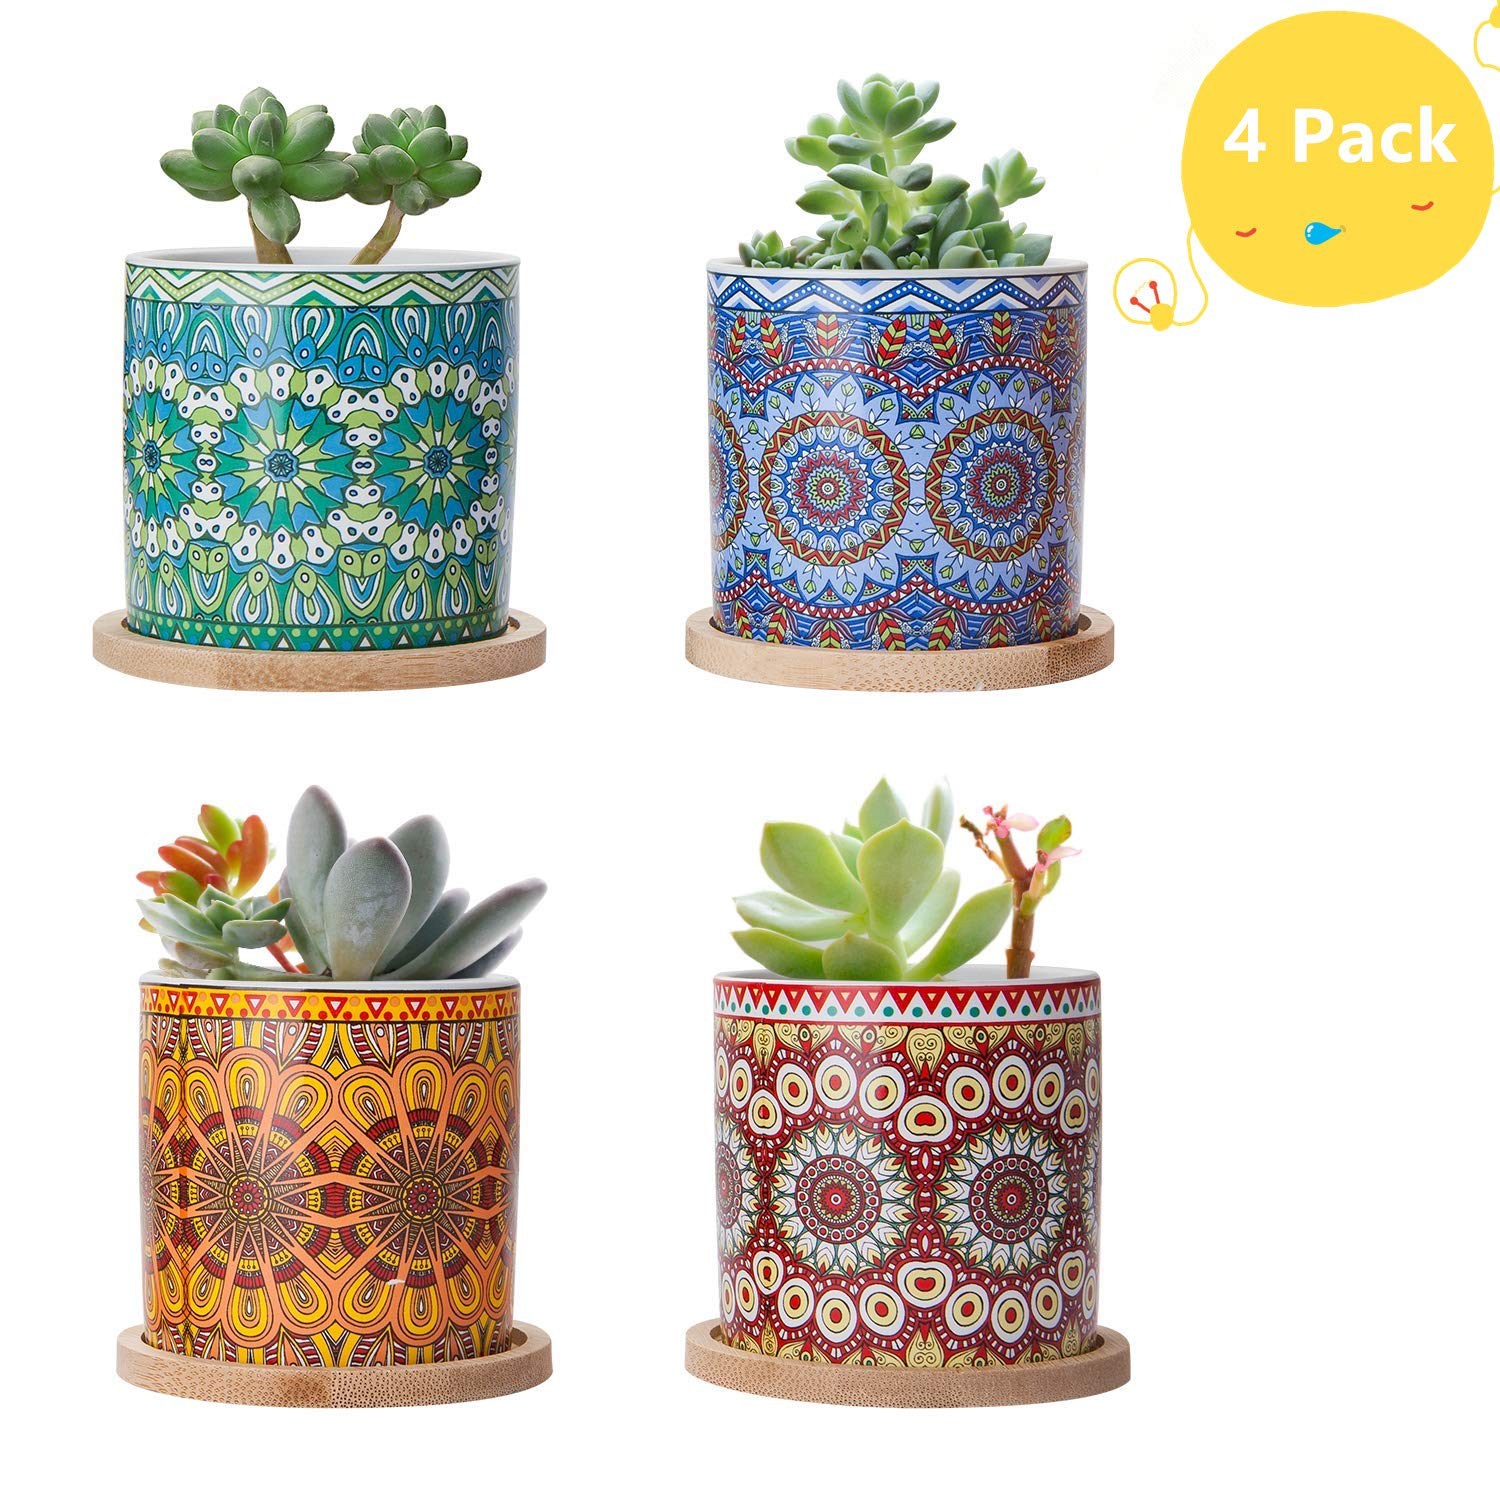 Succulent Plant Pots-3.0 Inch Cylinder Mandalas Style Ceramic Planter for Cactus Succulent Planting with Drainage Hole Bamboo Trays Suitable for Office Premium Gift for Family and Friends-Set of 4 A